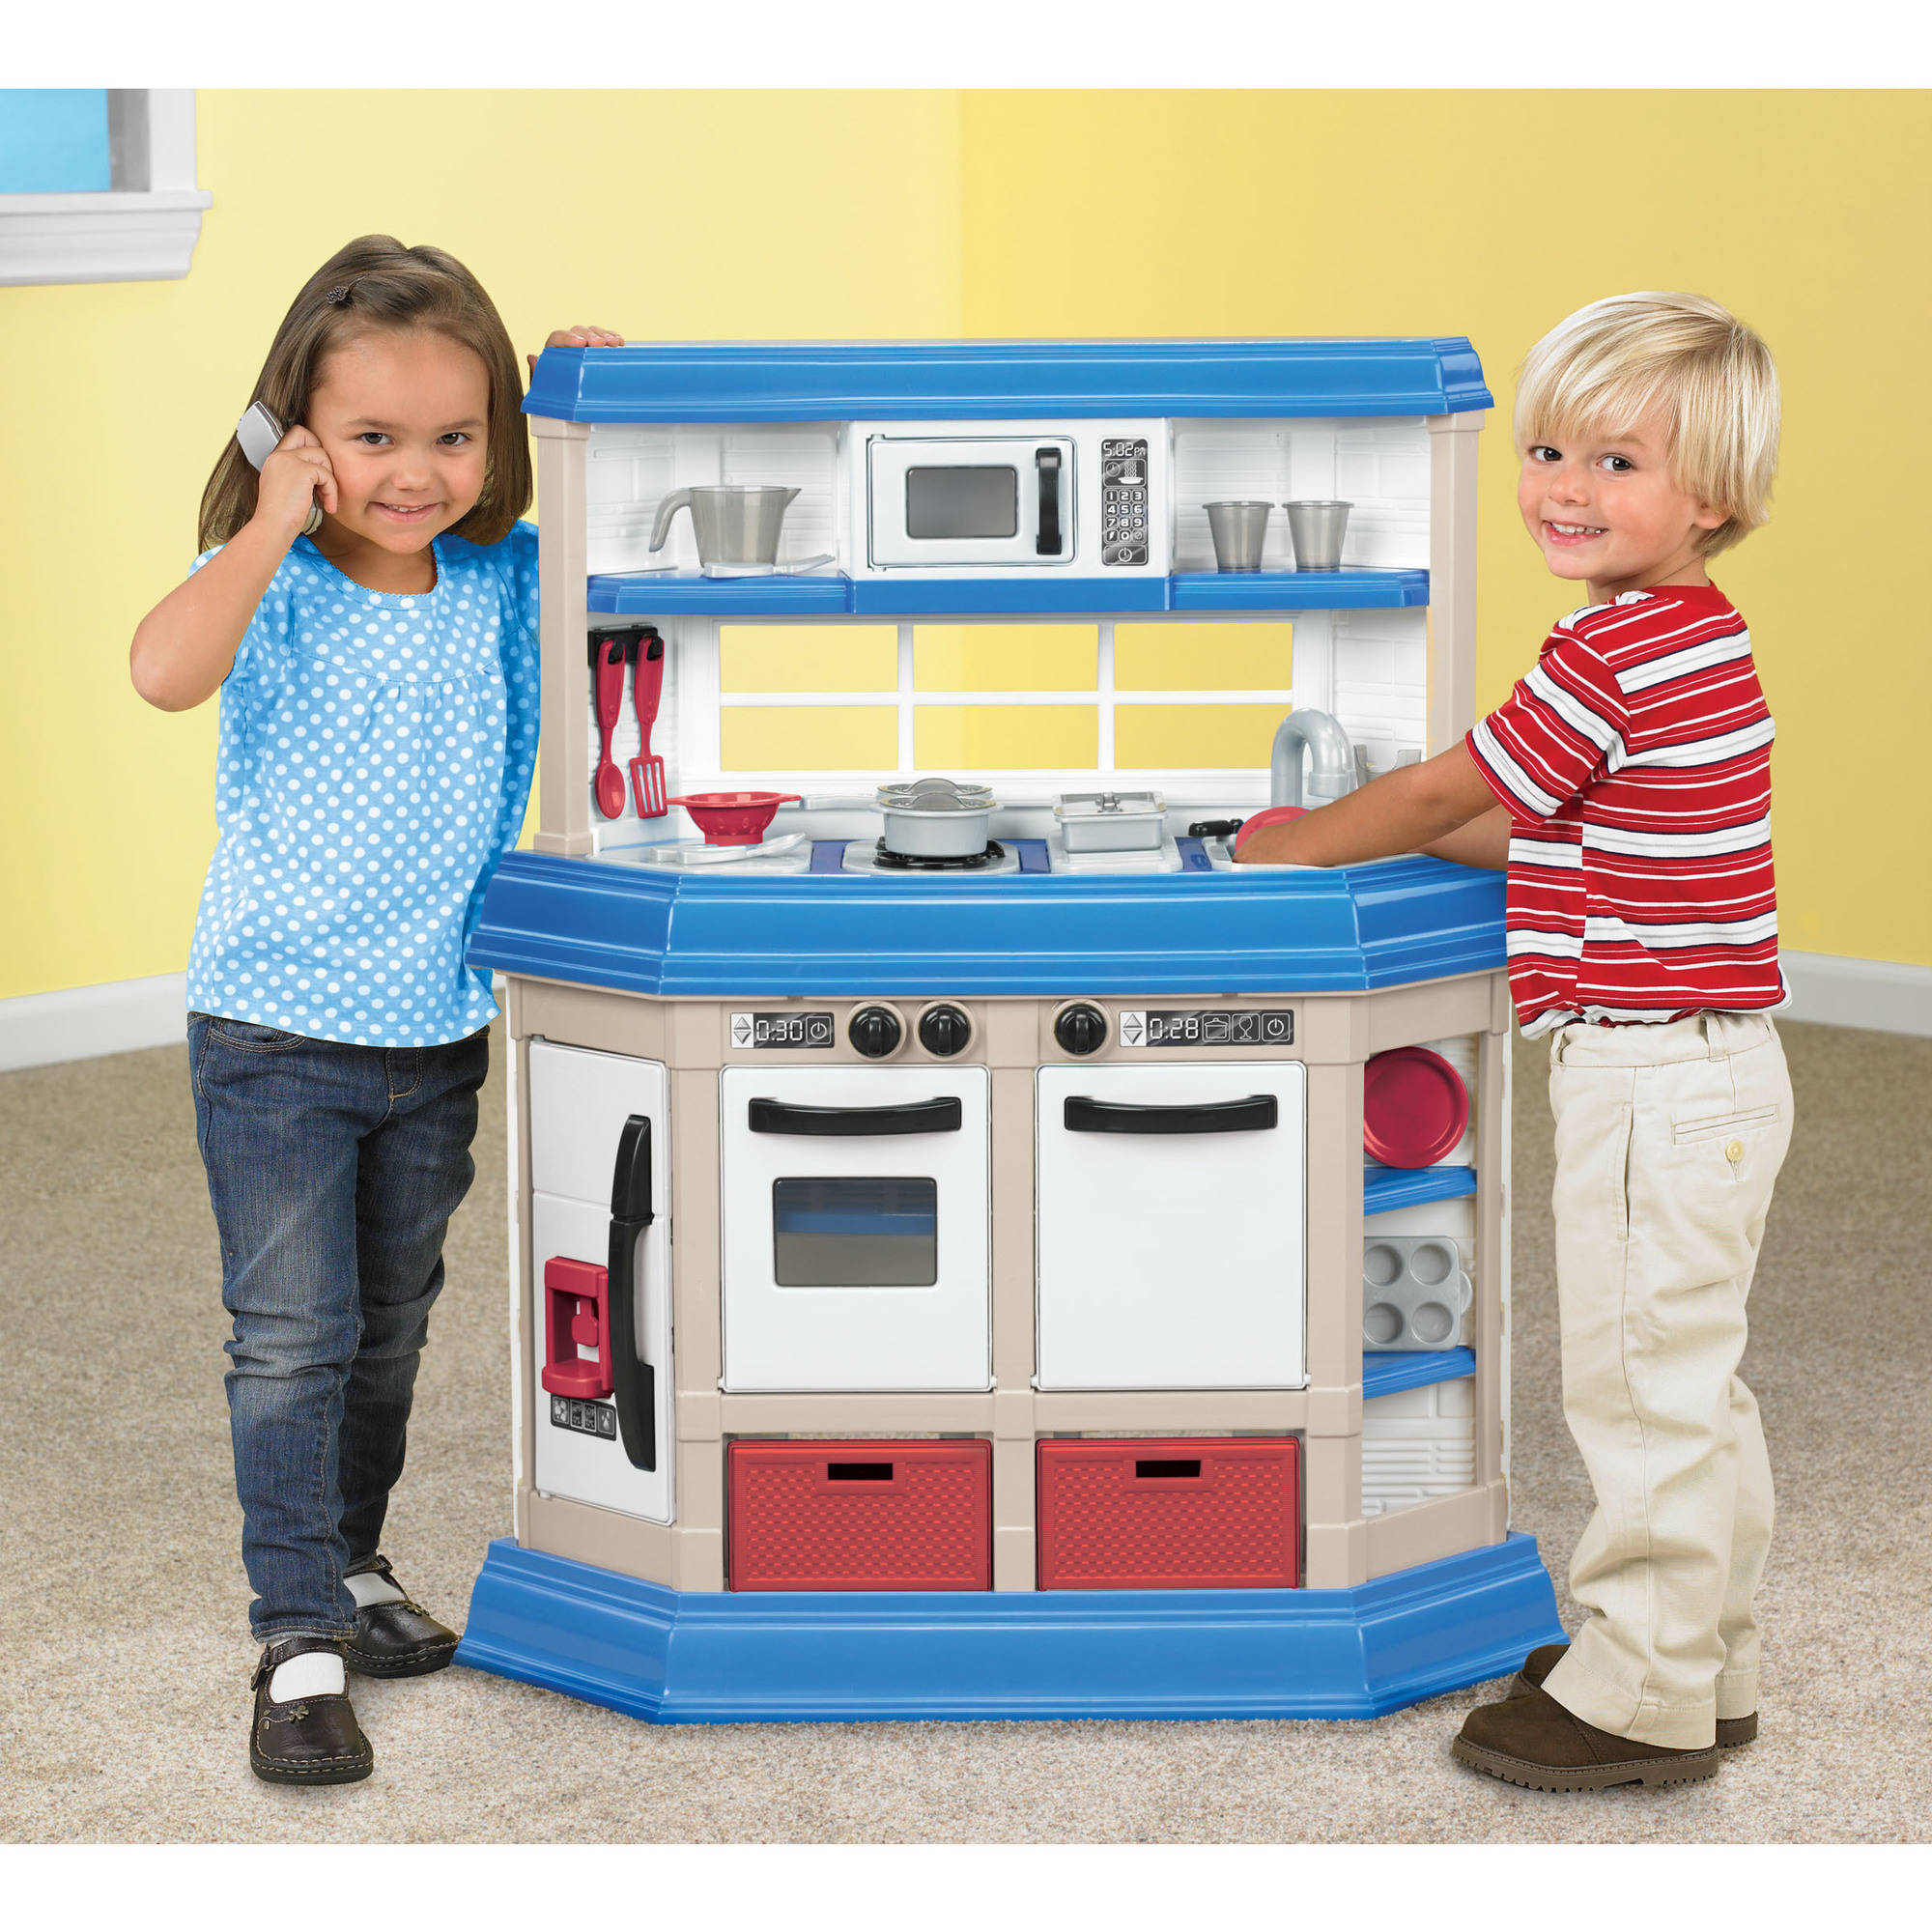 KidKraft Blue Retro Kitchen And Refrigerator   Walmart.com